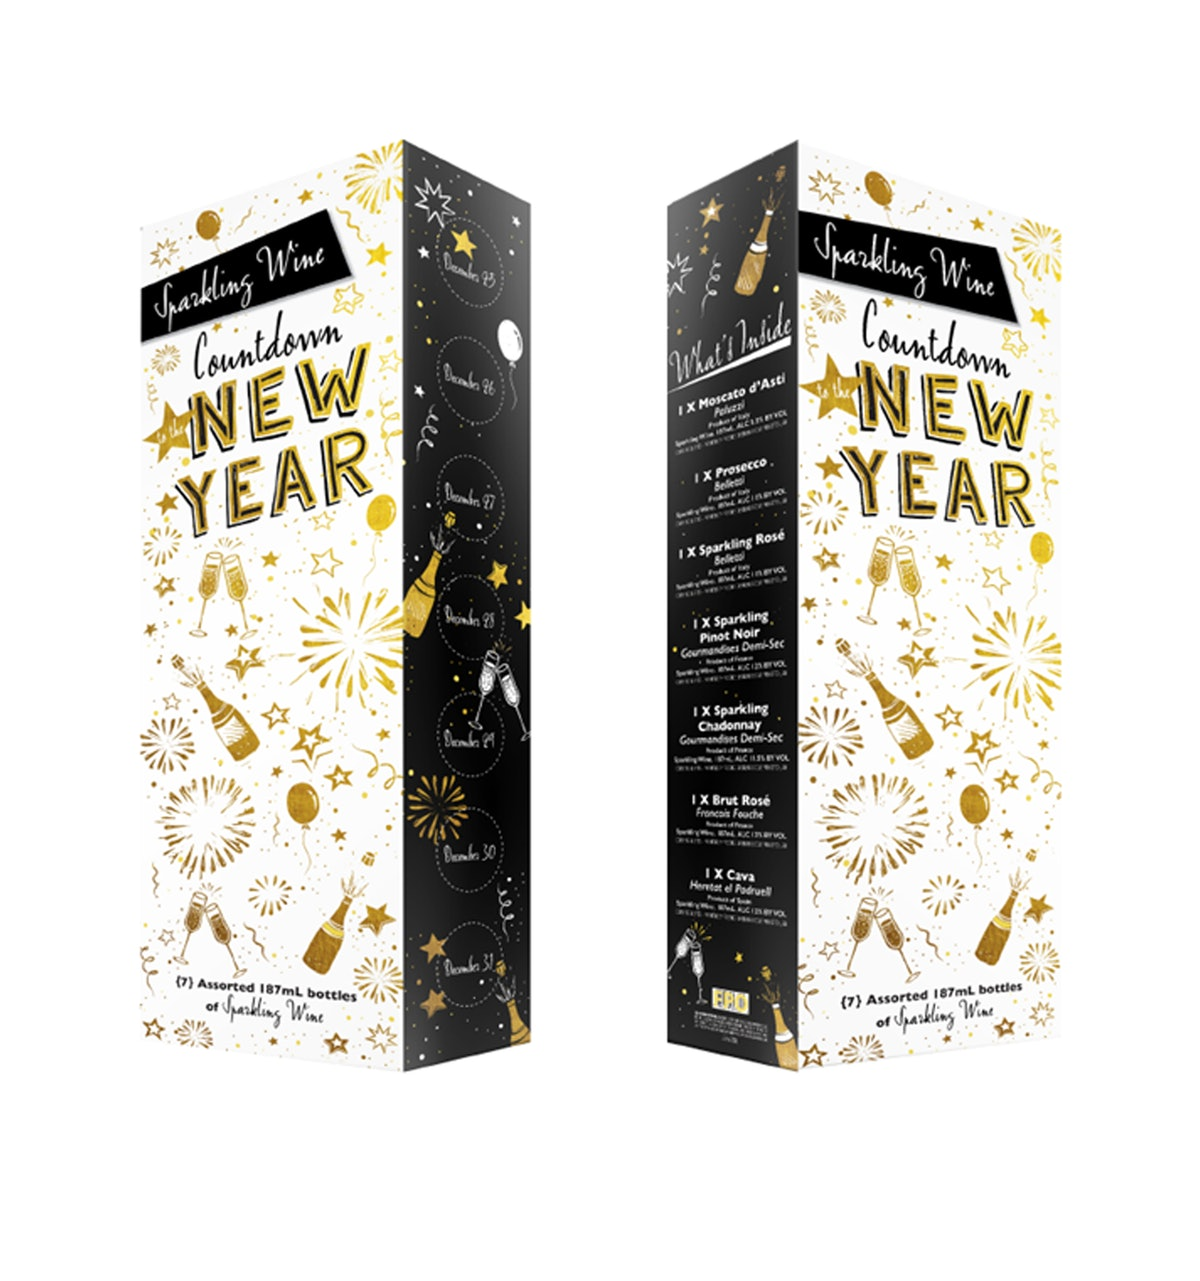 Aldi's 2020 New Year's Countdown Calendar brings a festive sparkle to your countdown to New Year's Day.